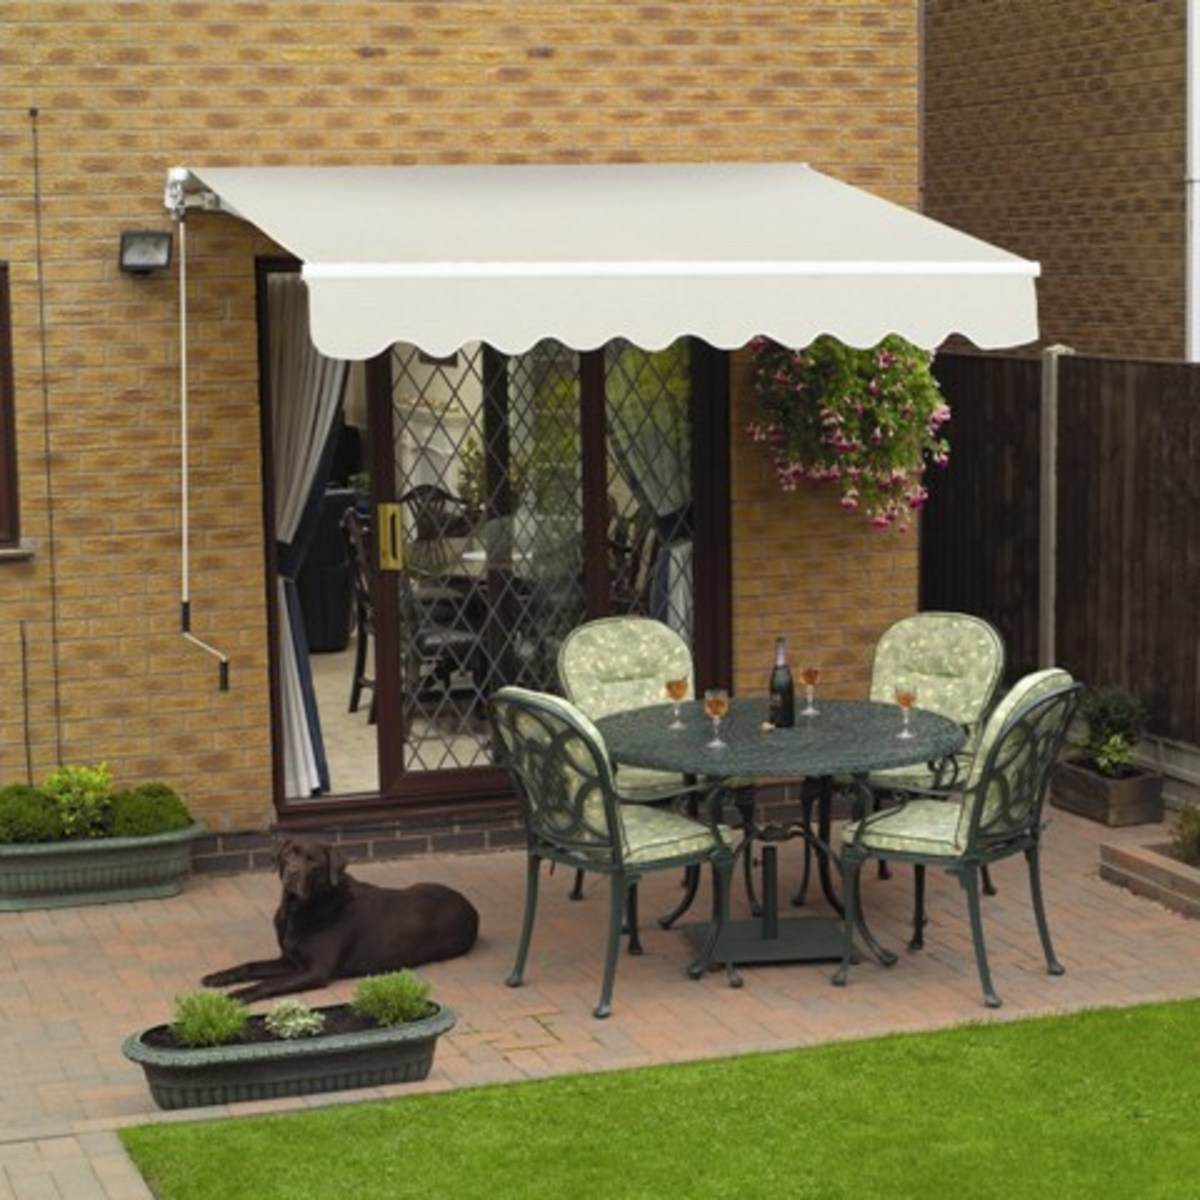 Patio Shades Canopy Overheads Roofs And Other Covers